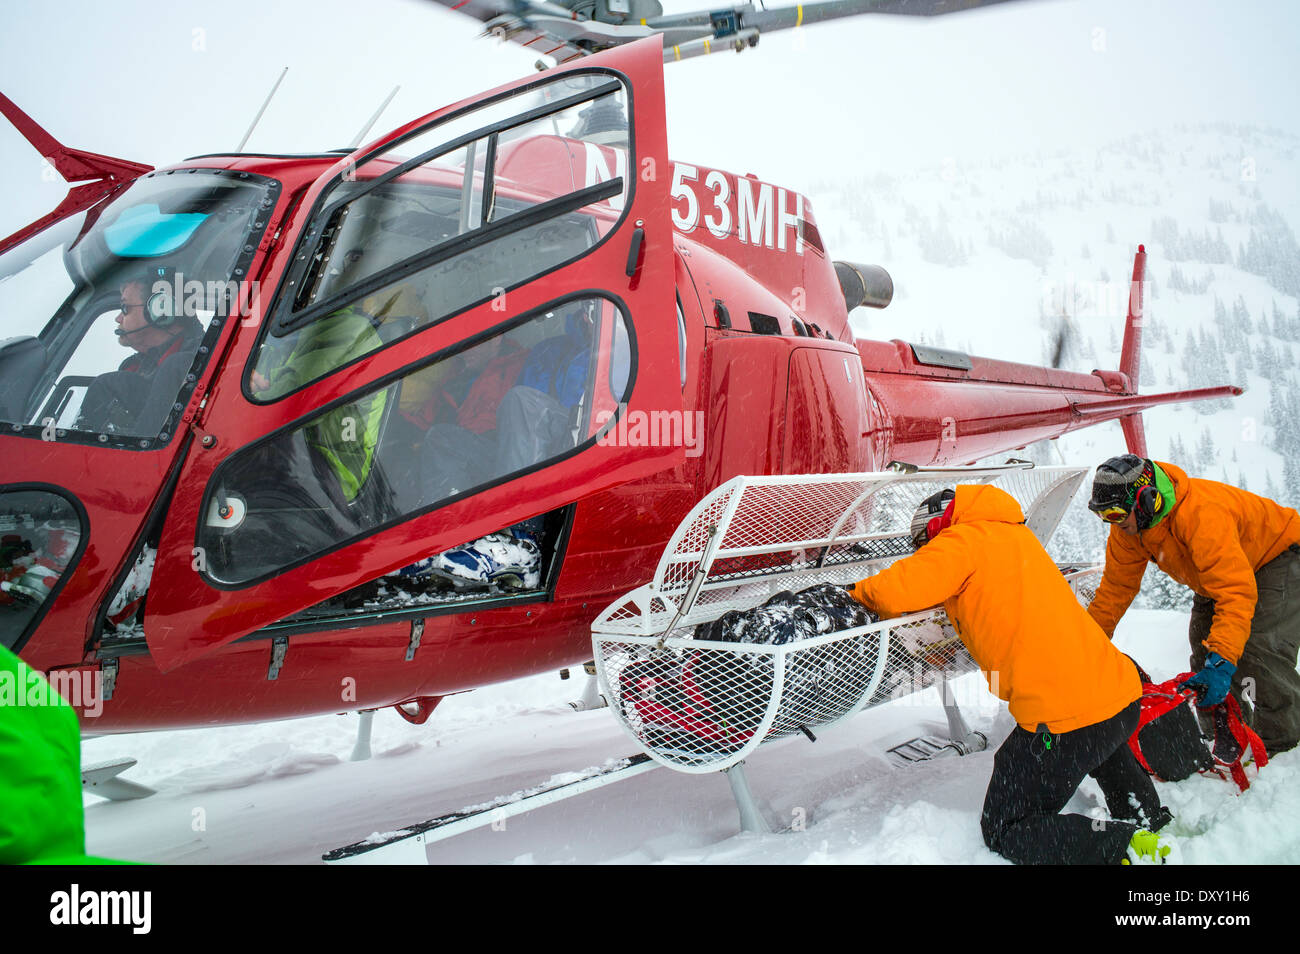 Professional mountain guides unloading skiers gear from helicopter, remote North Cascade Mountains, Washington State, USA - Stock Image